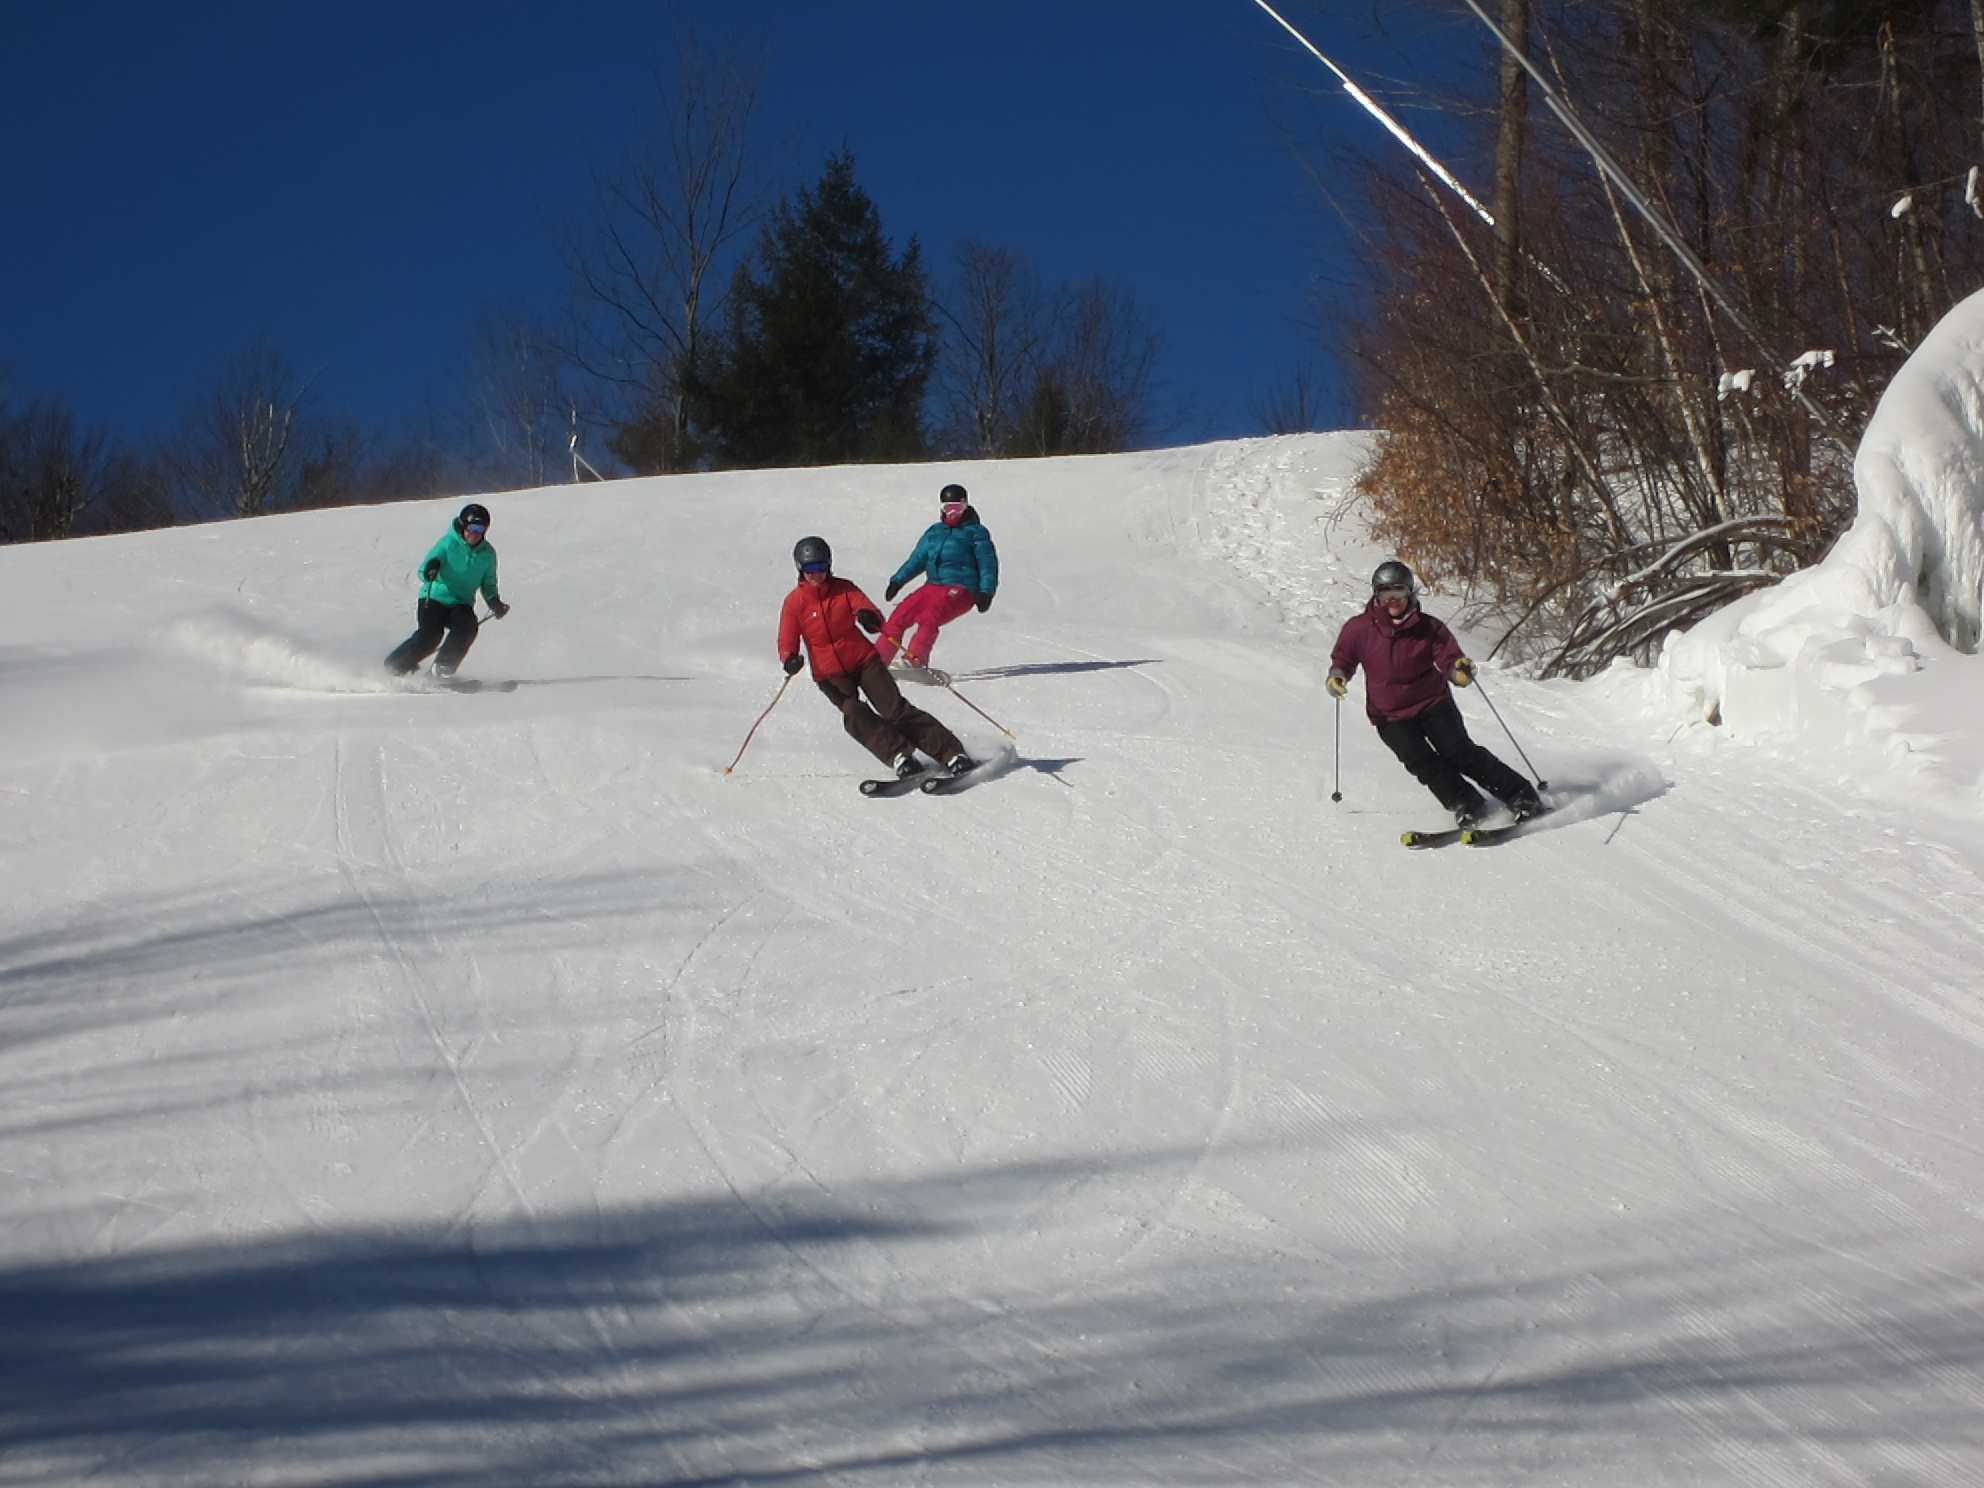 Sarah (far right) skiing in weekly video shoot.